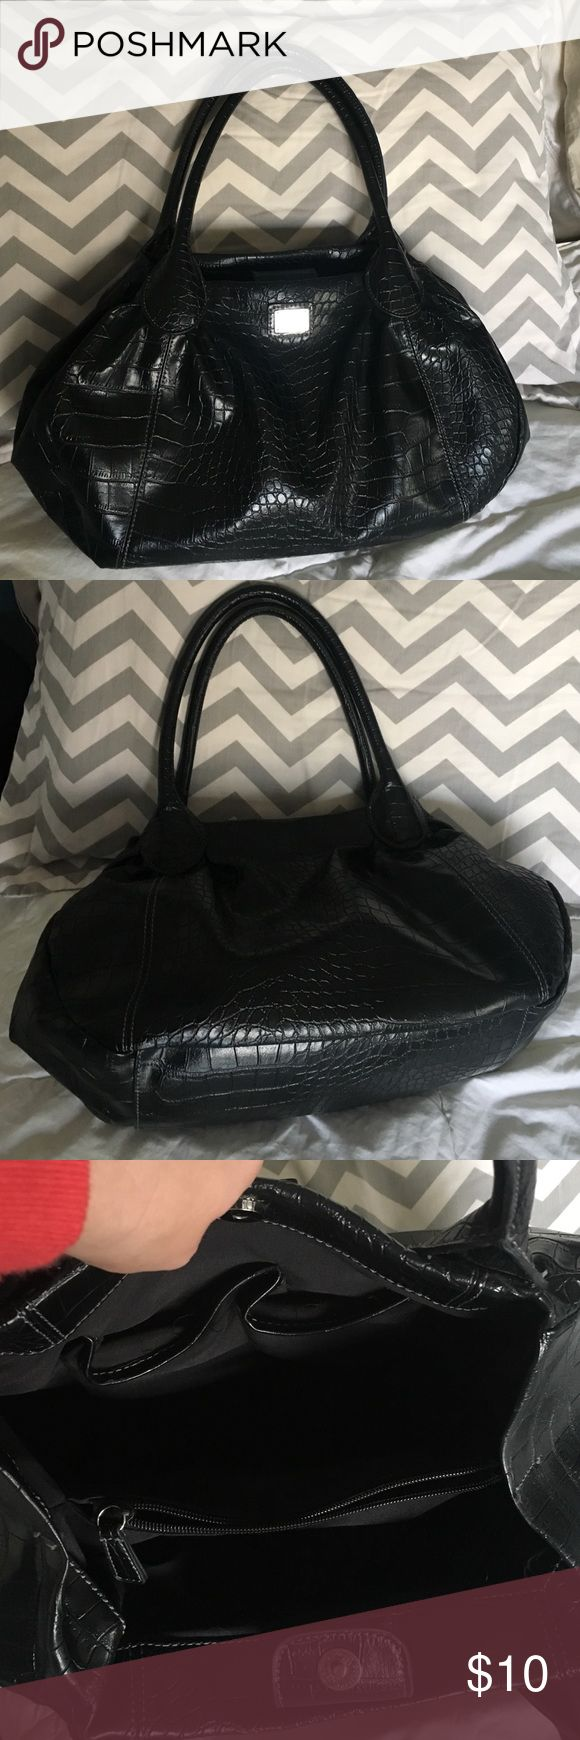 New York and company imitation crocodile handbag Black imitation crocodile bag to handles several compartments inside good condition New York & Company Bags Shoulder Bags